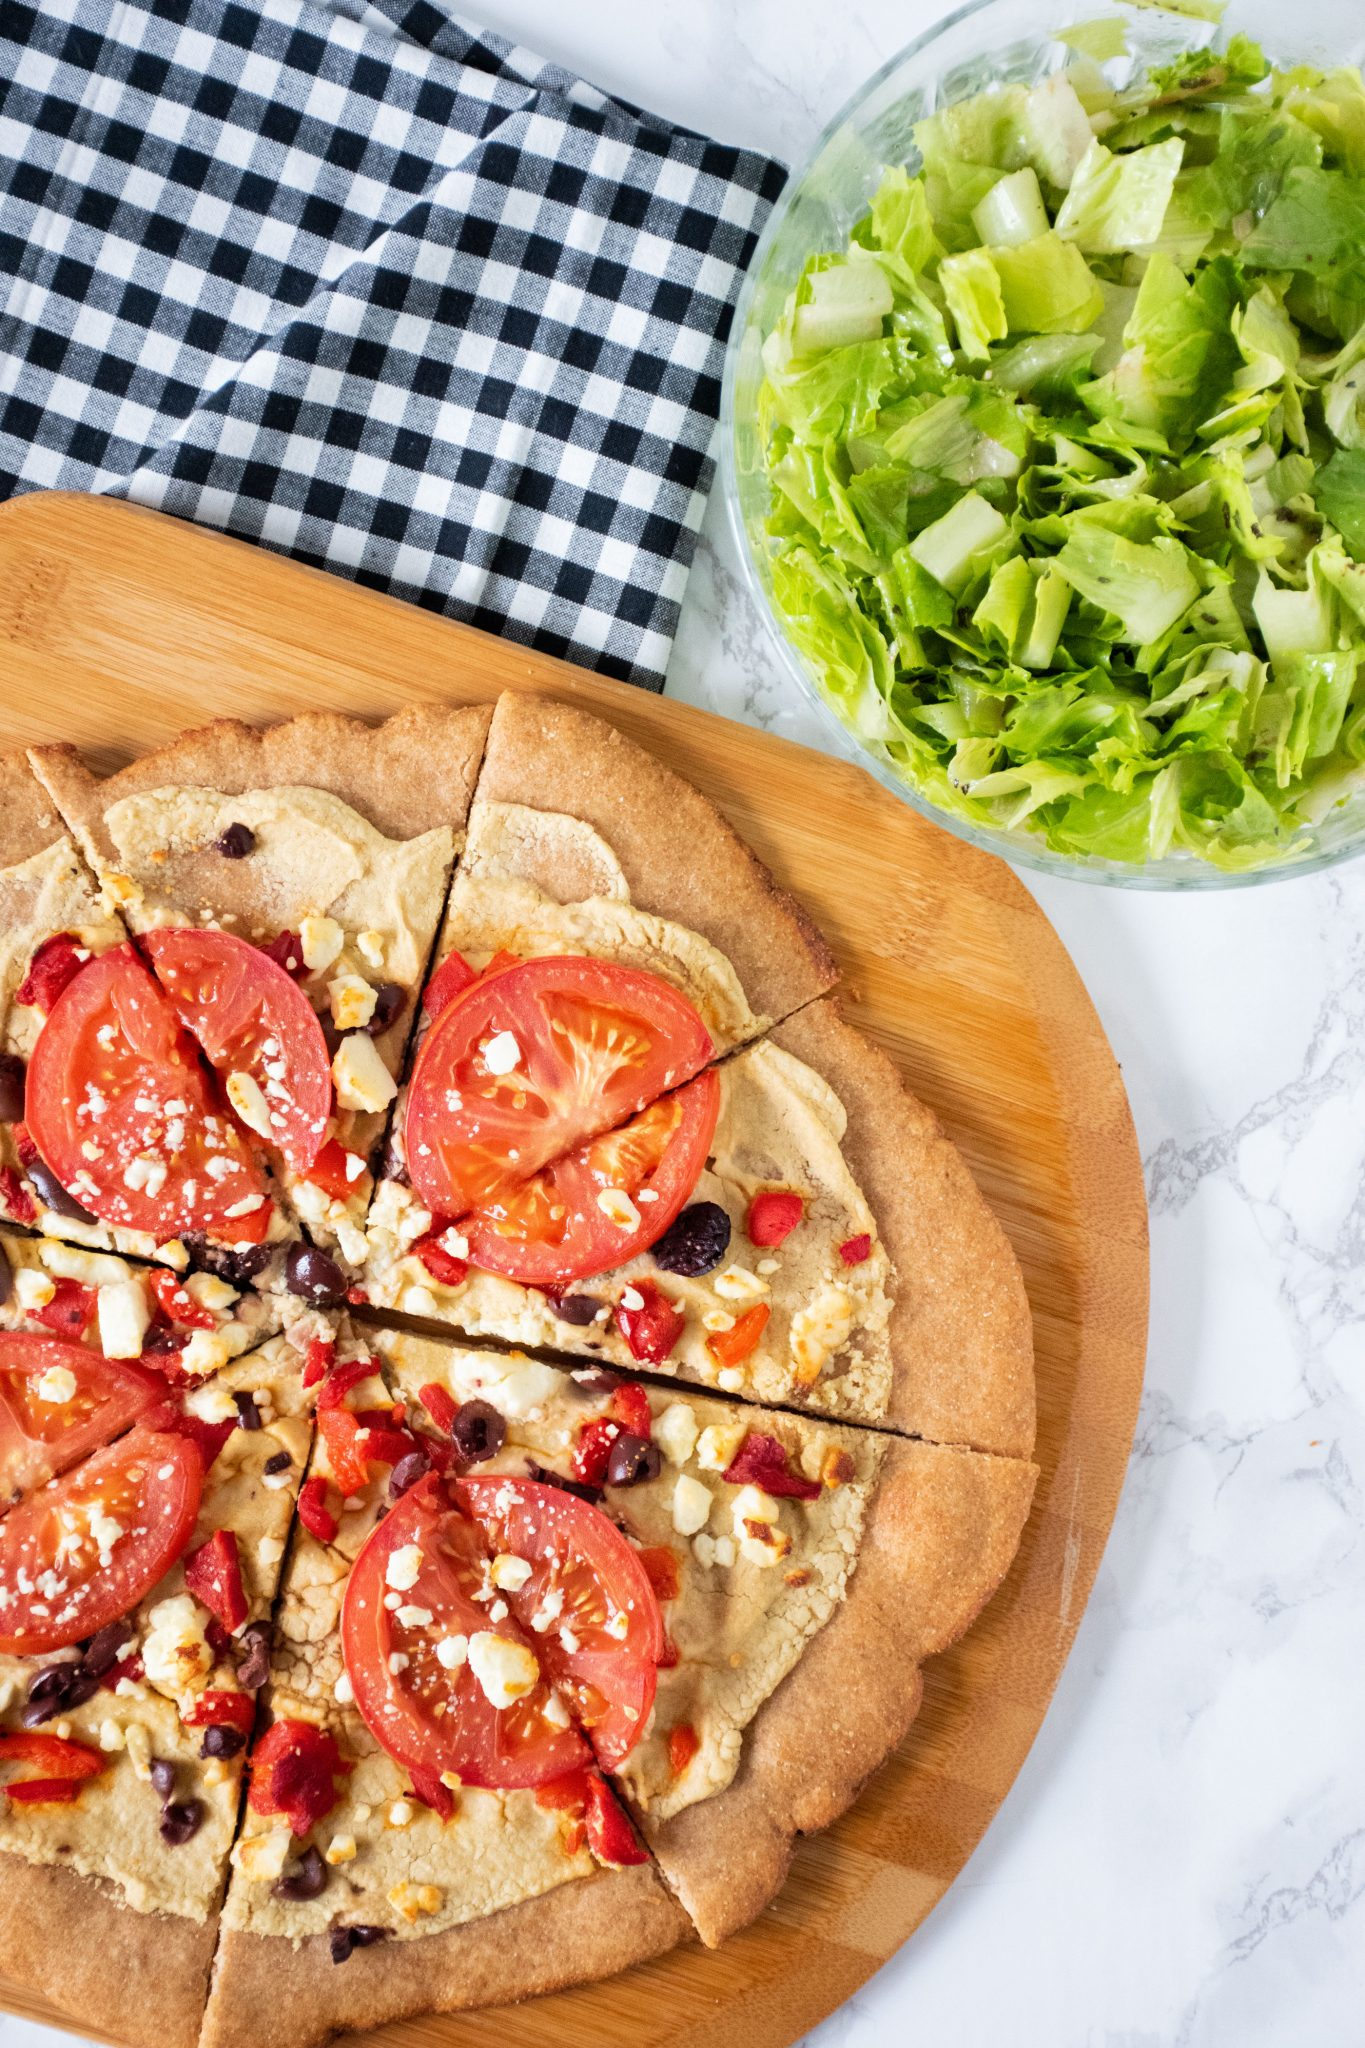 Whole grain pizza on a peel, with bowl of salad in background.